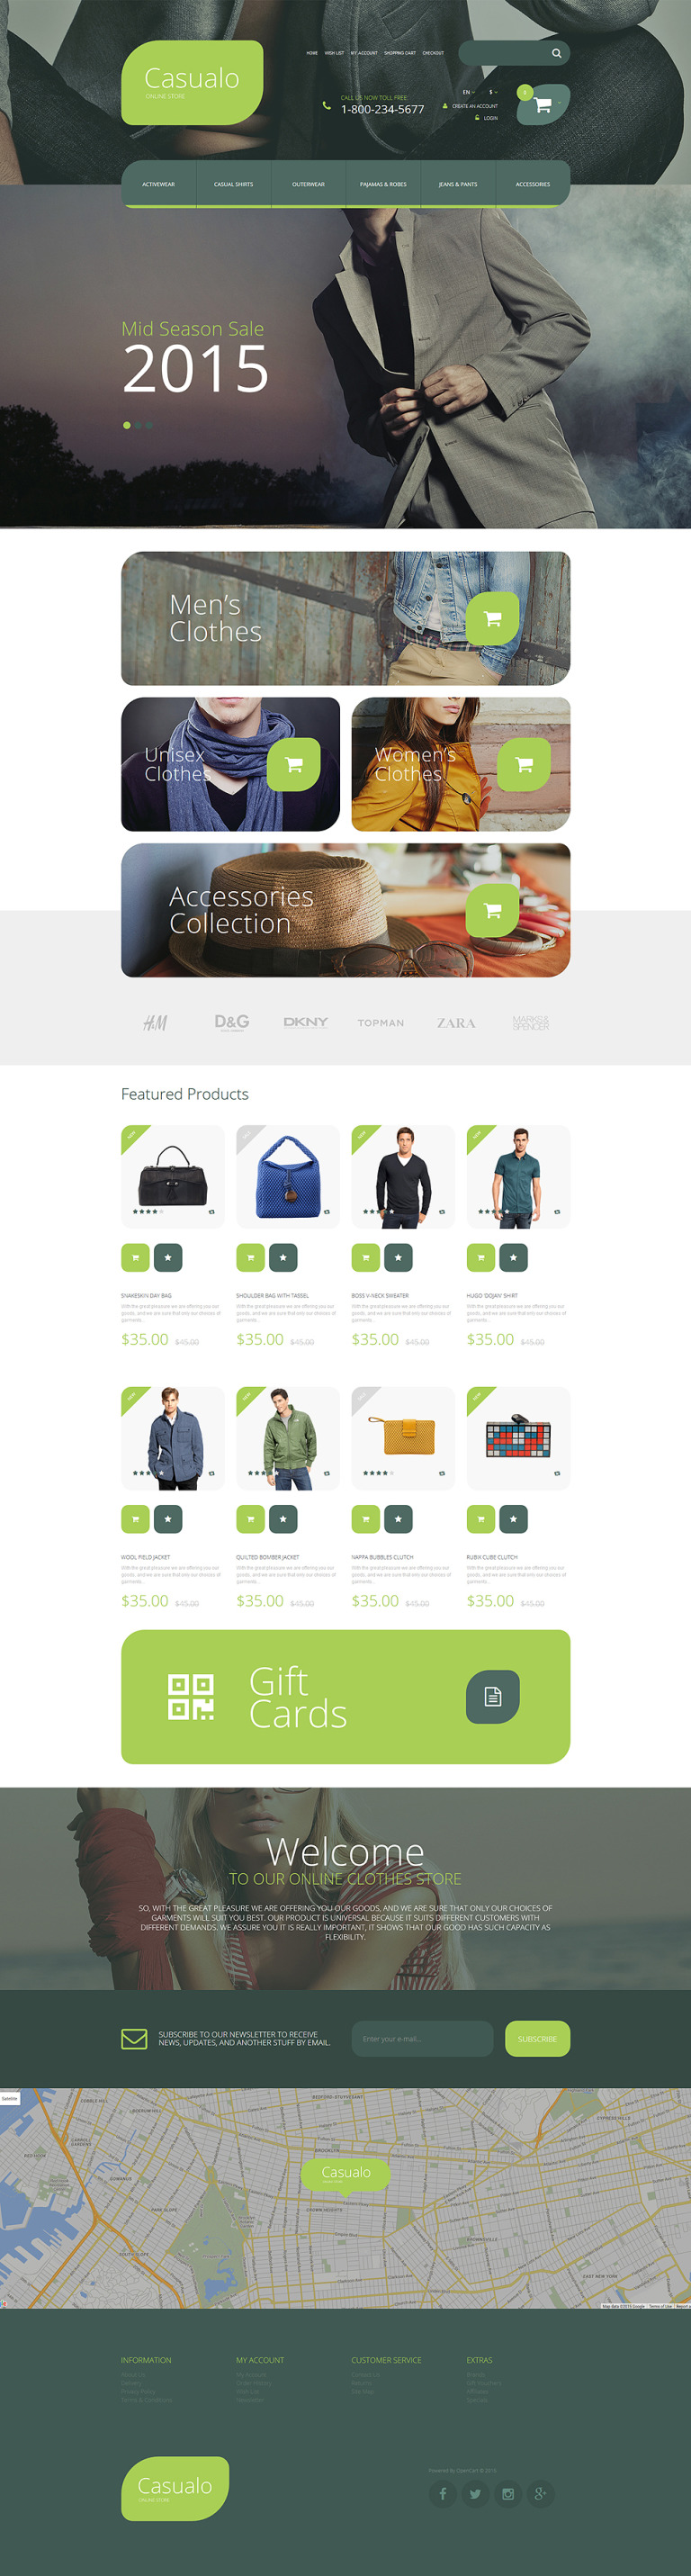 Casualo OpenCart Template New Screenshots BIG